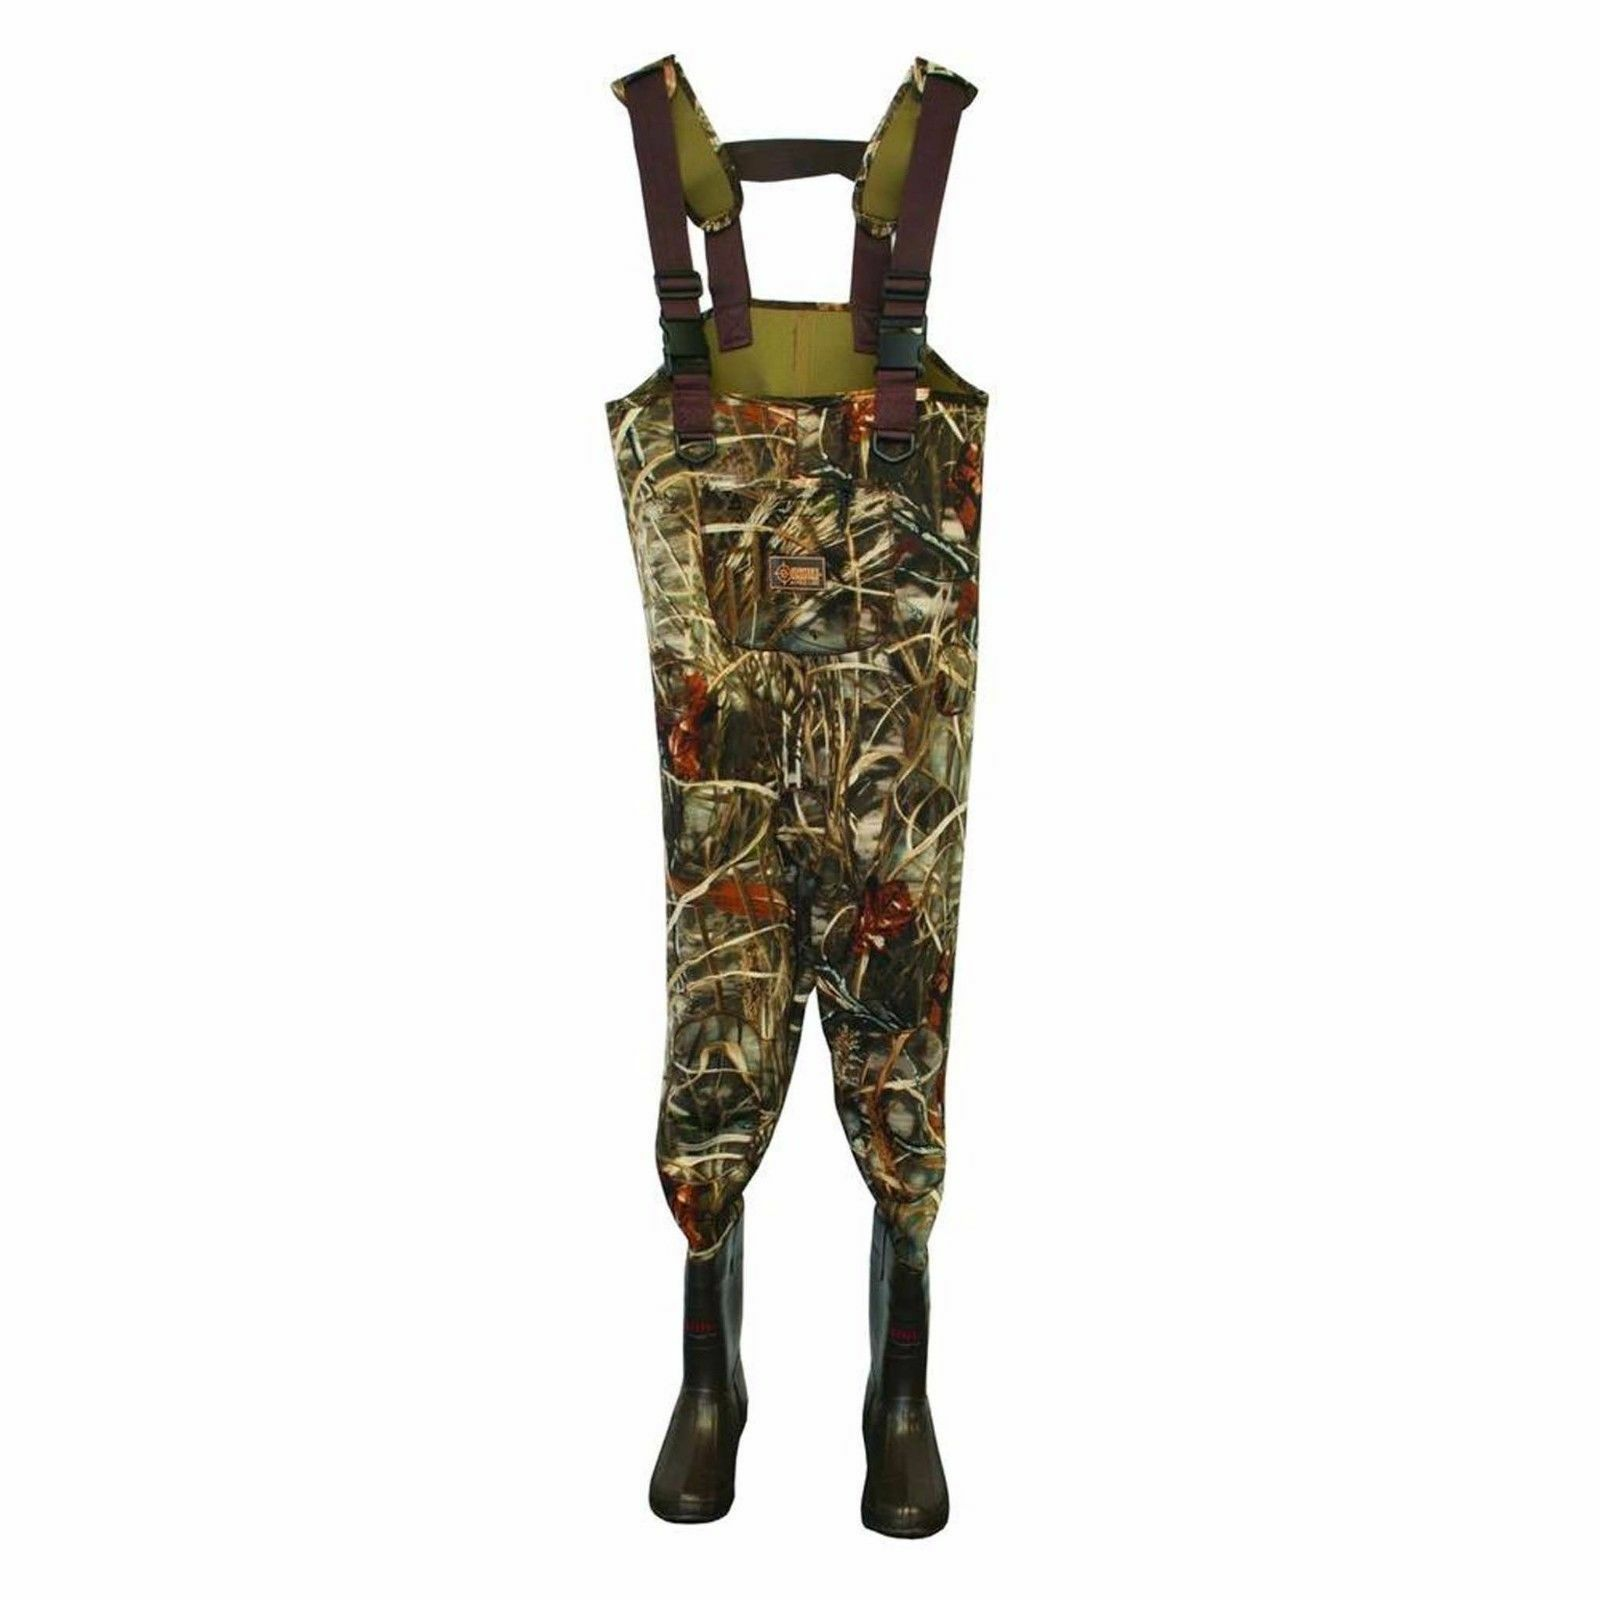 Hunters Advantage HA92104MX4-8 3.5mm Cleated Waders Max-4 Camo 400GR Thinsulate